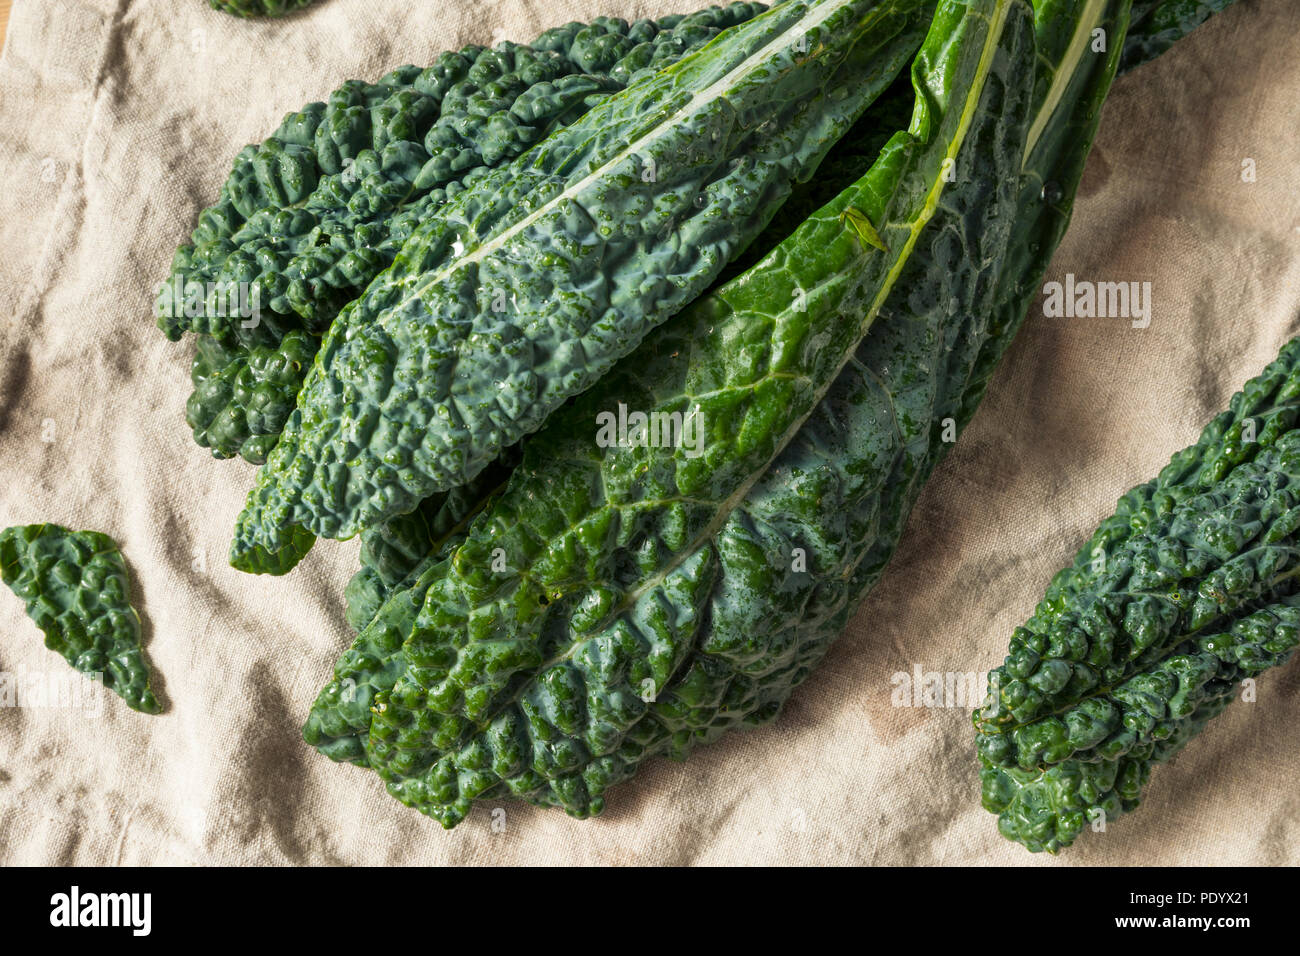 Raw Green Organic Lacinato Kale Ready to Cook - Stock Image